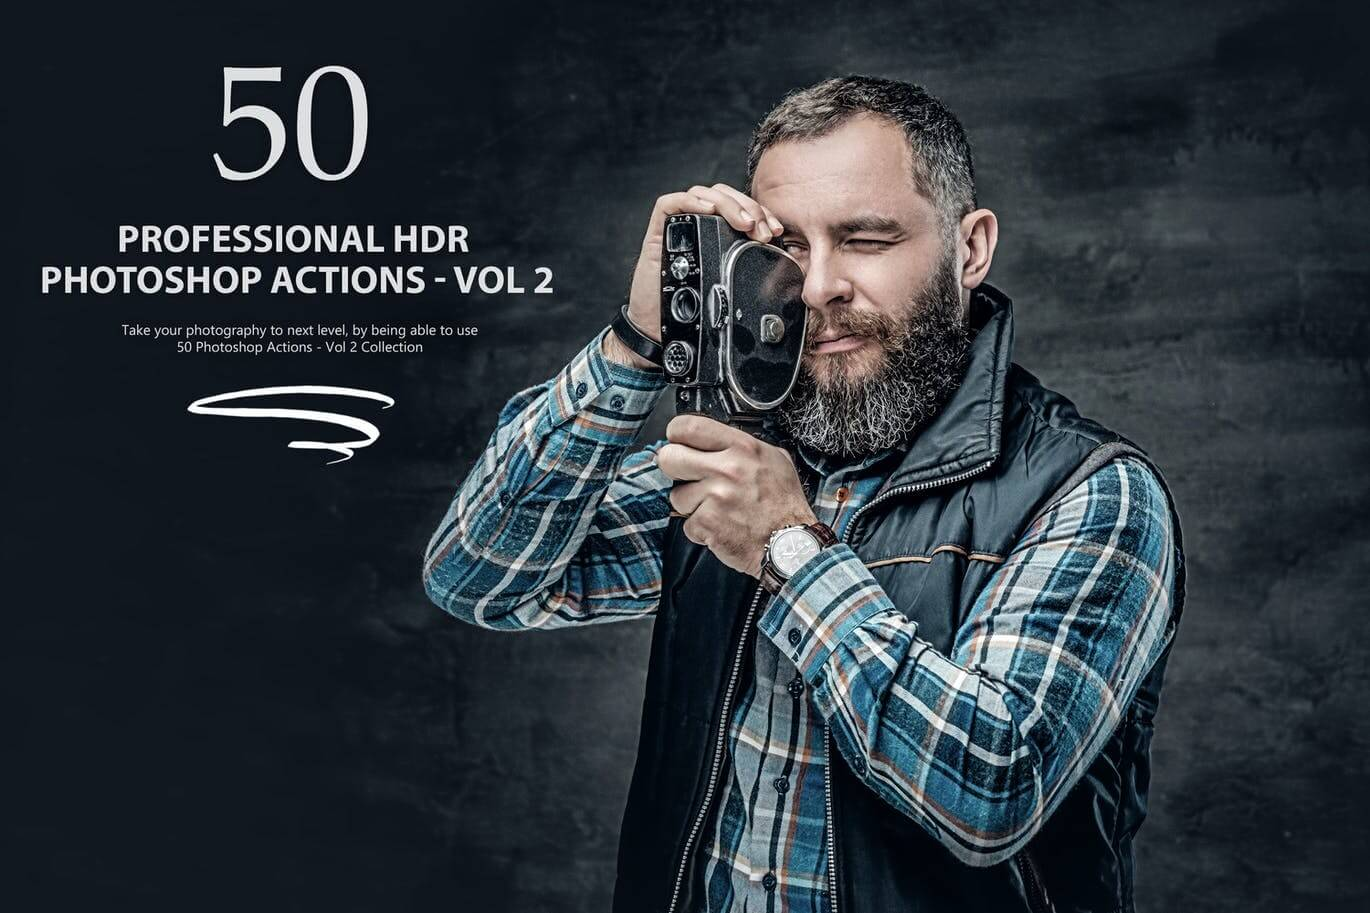 50 HDR Photoshop Actions - Vol 2